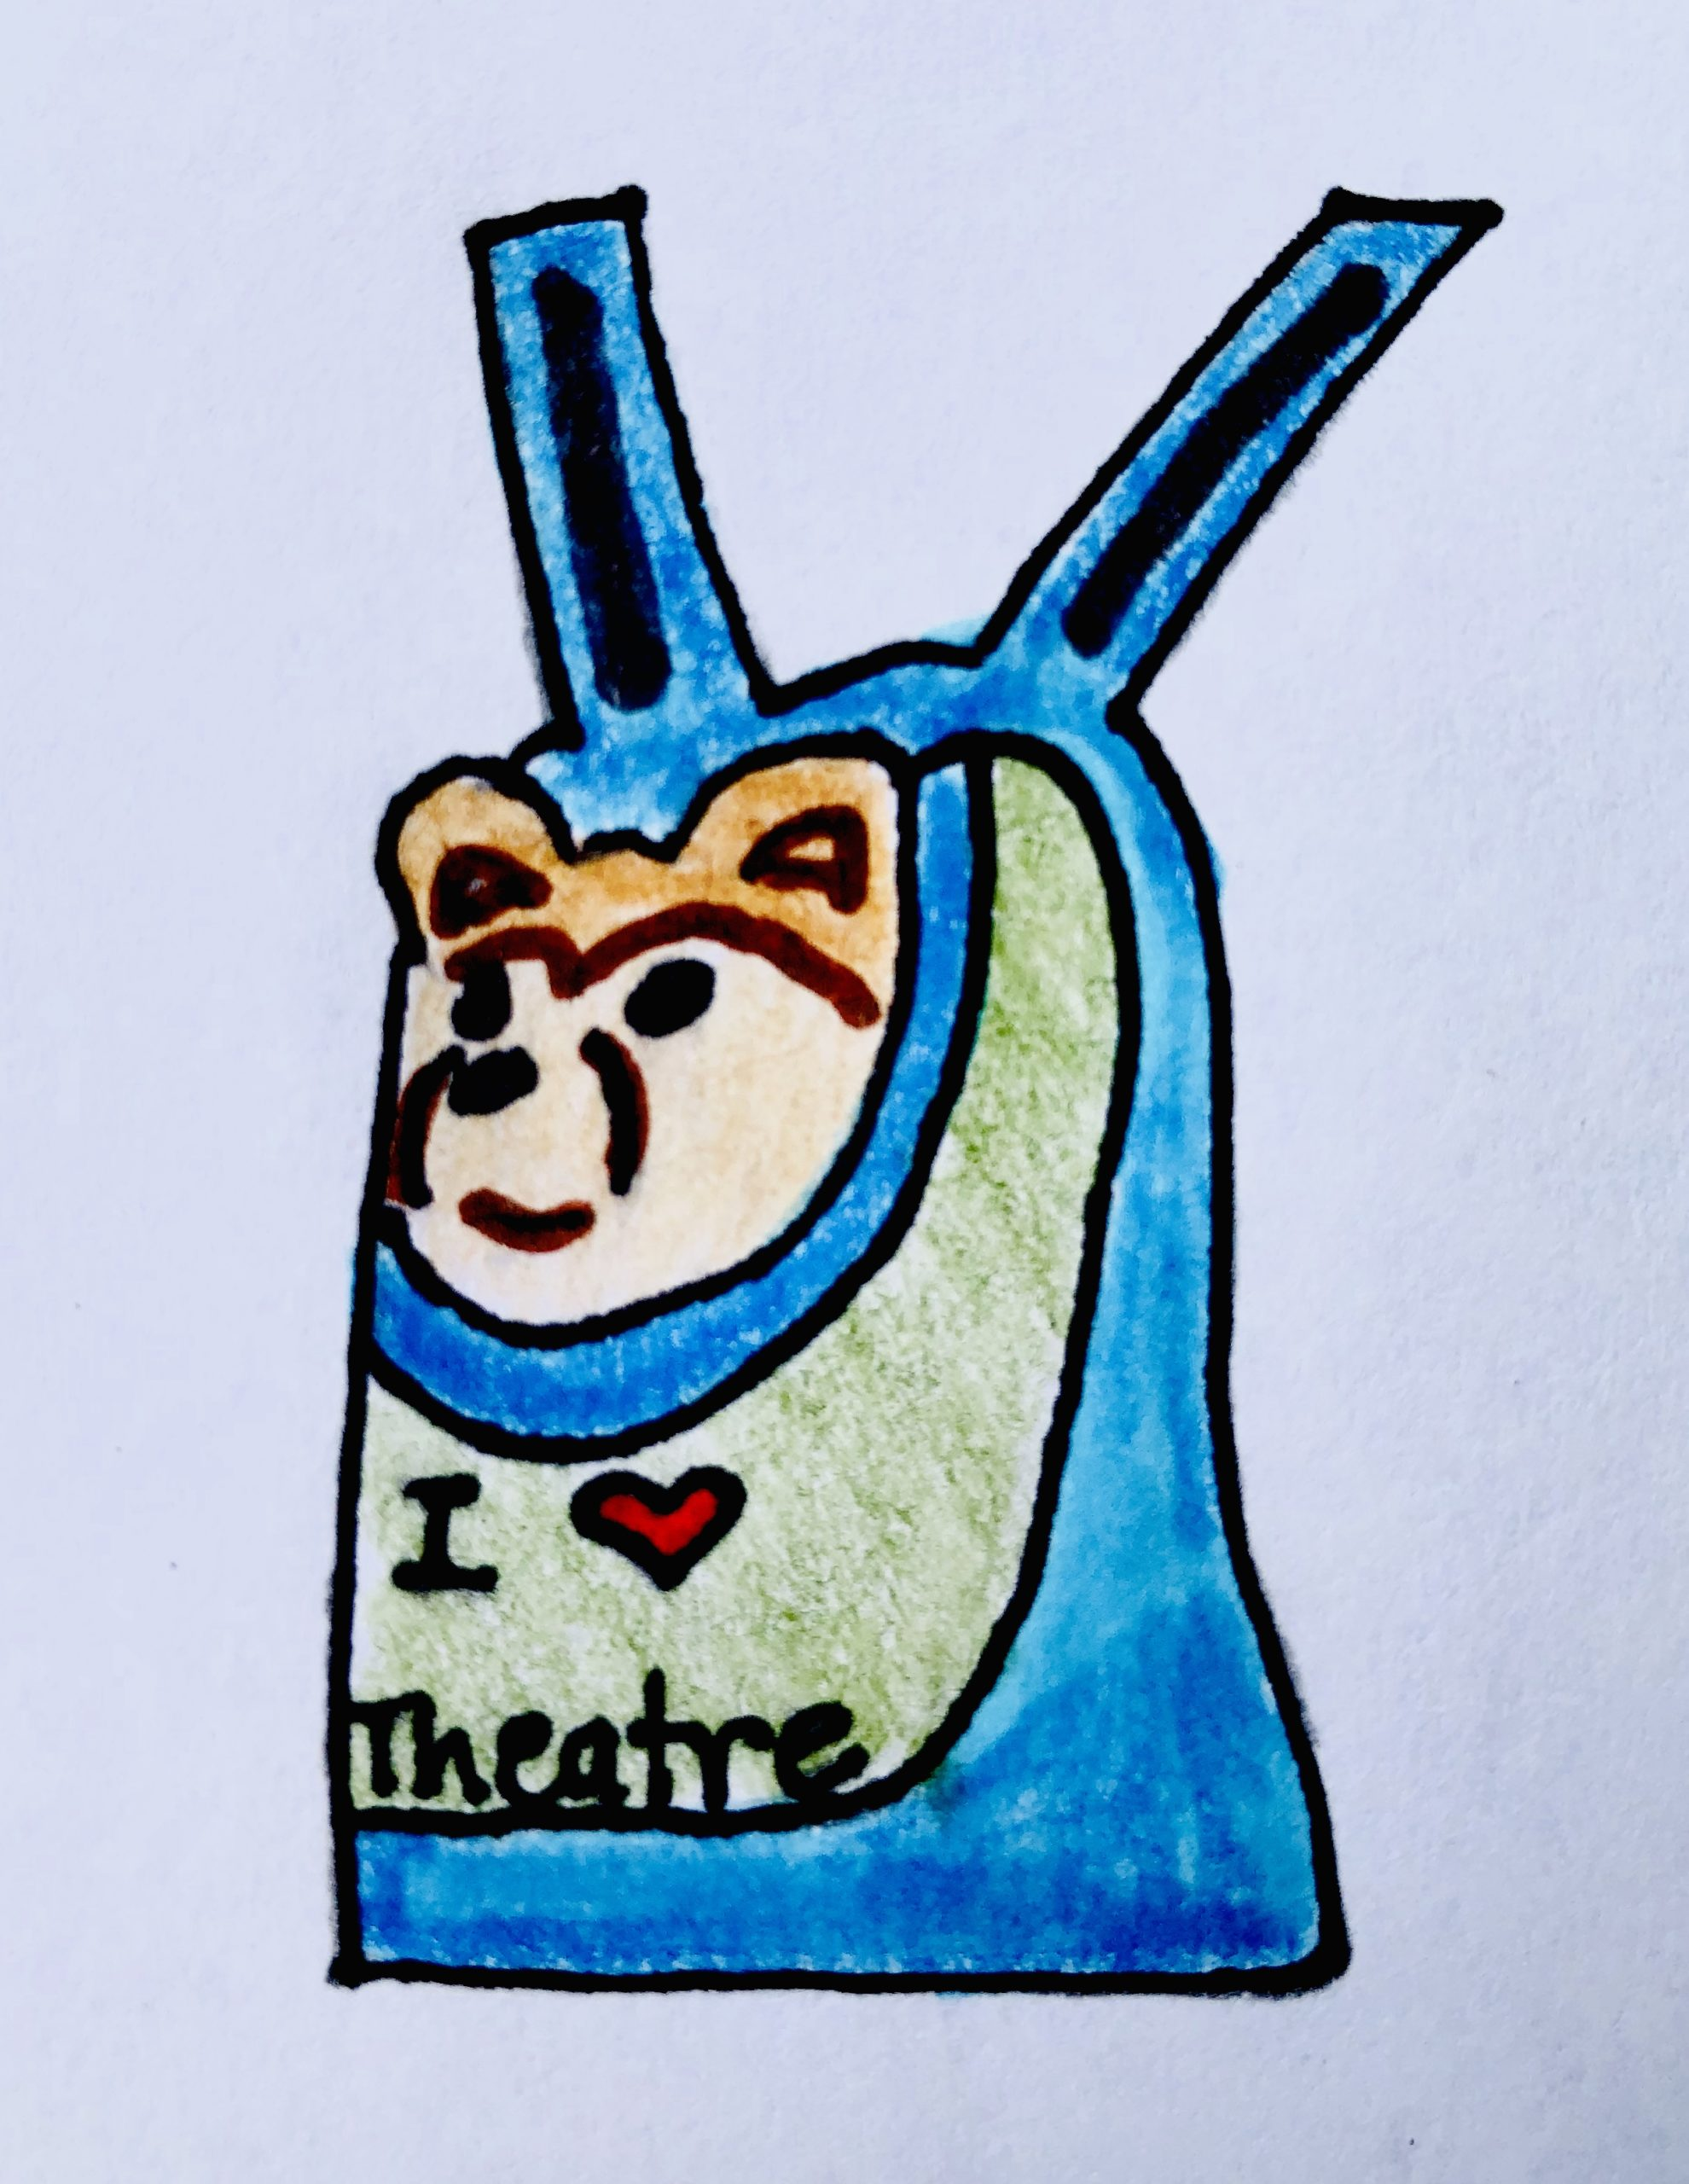 """In a blue and green backpack is a Pomeranian stuffed animal dog. His head is sticking out and the backpack has """"I love Theatre"""" on the front. It's from the mystery story for kids, The Case of the Stolen Stuffy."""